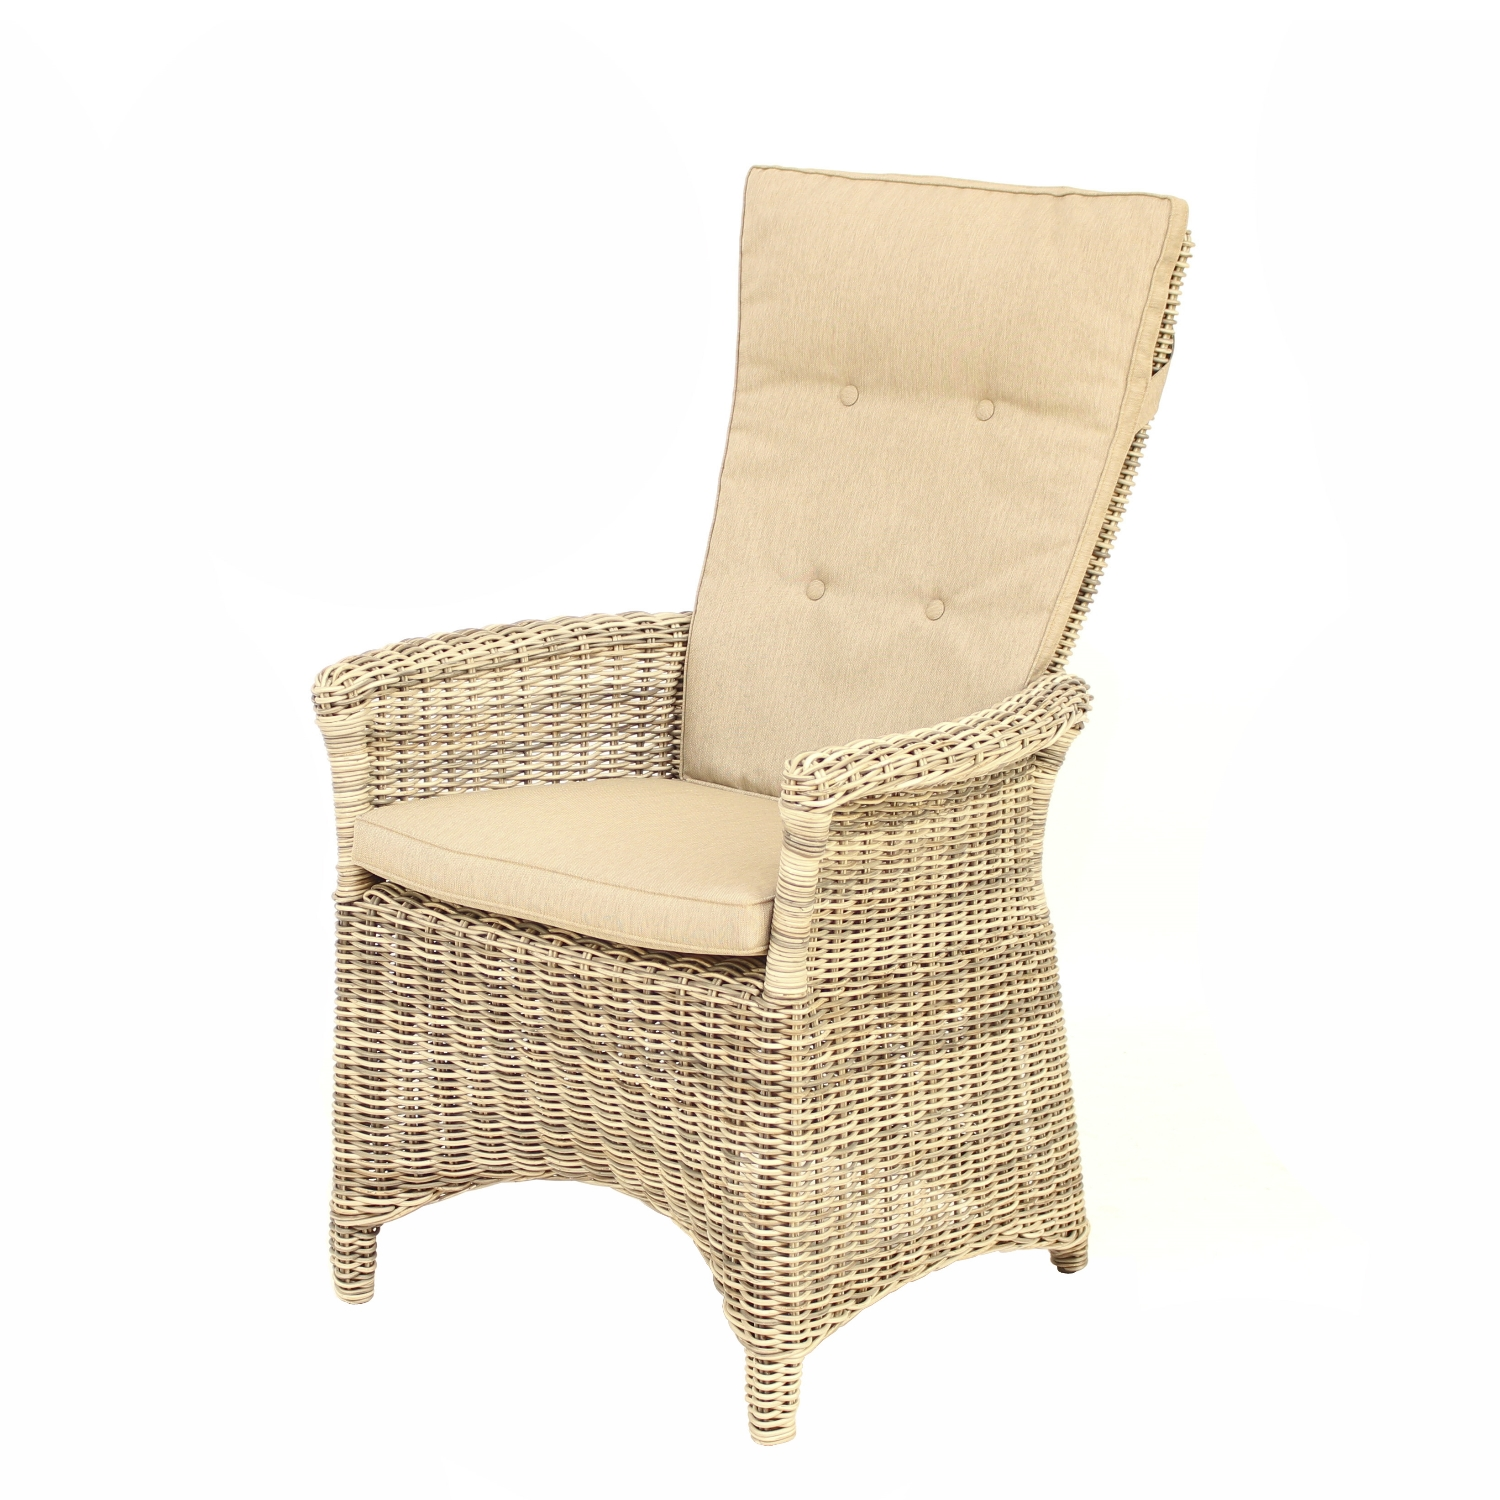 Sessel Ohio Move Sand Inkl Kissen Sessel Verstellbar - Polyrattan Sessel Verstellbar